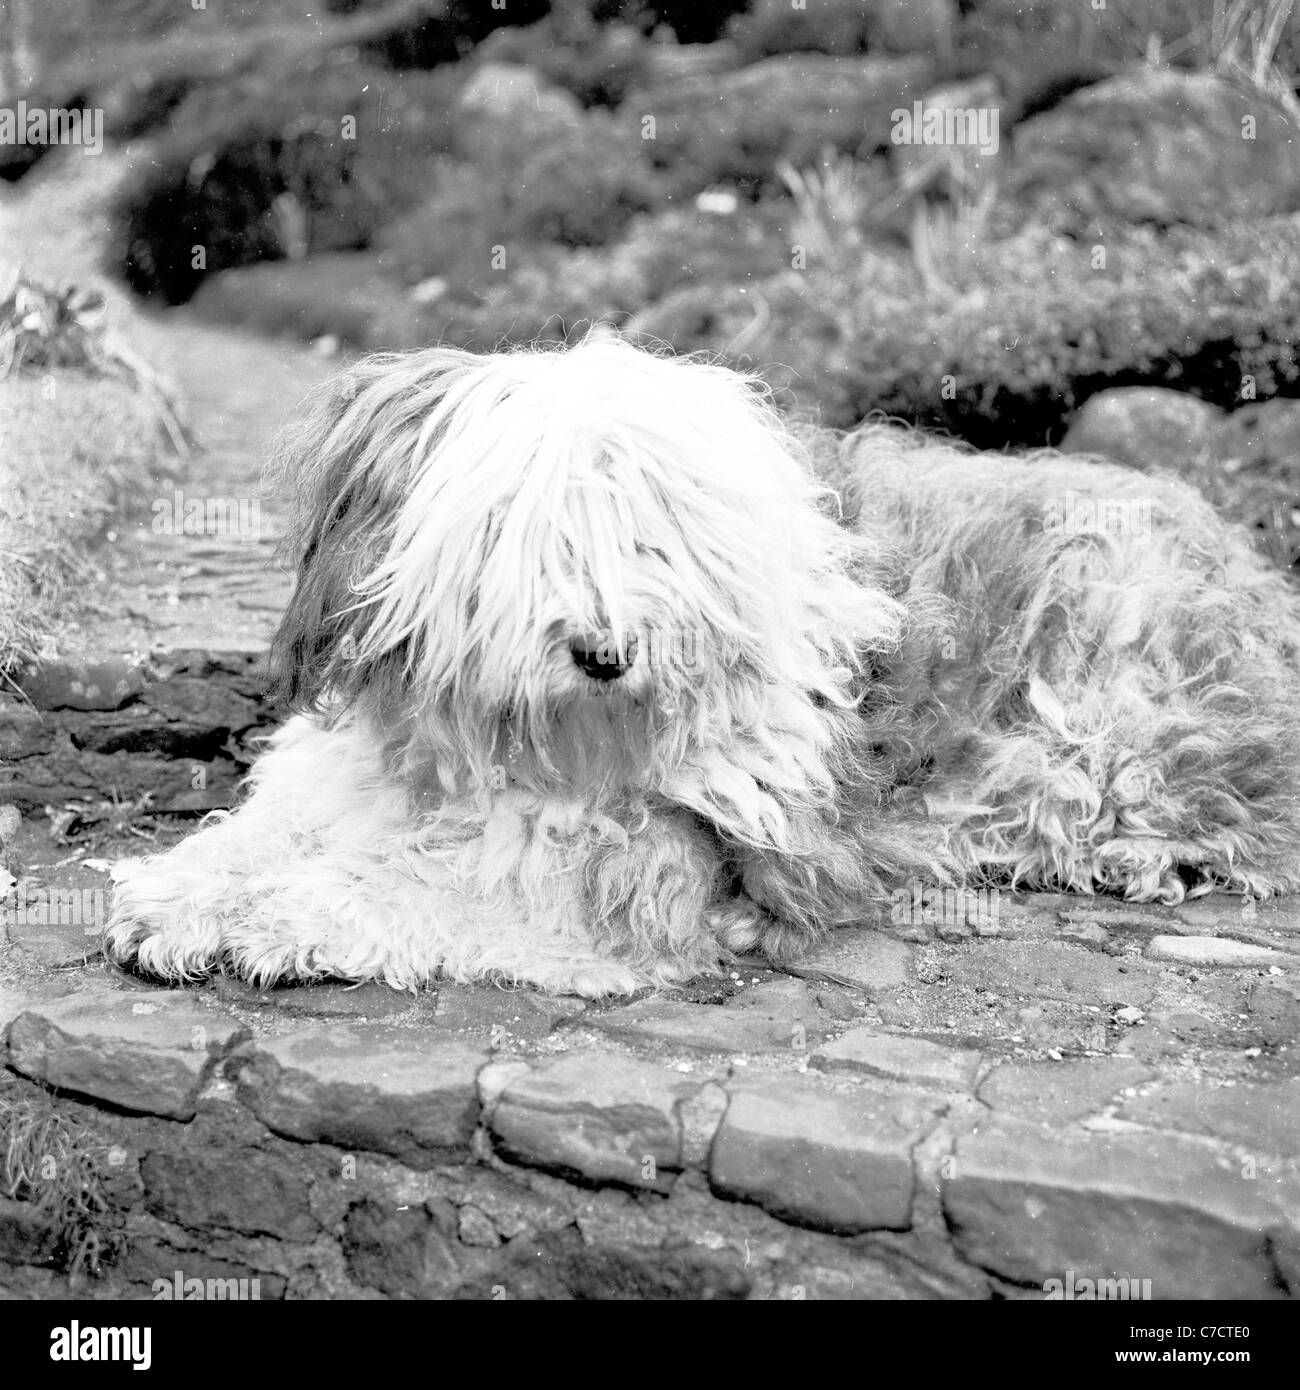 Small Bearded Collie puppy lies on paving stone in garden in this picture taken by J. Allan Cash in the 1950s. - Stock Image